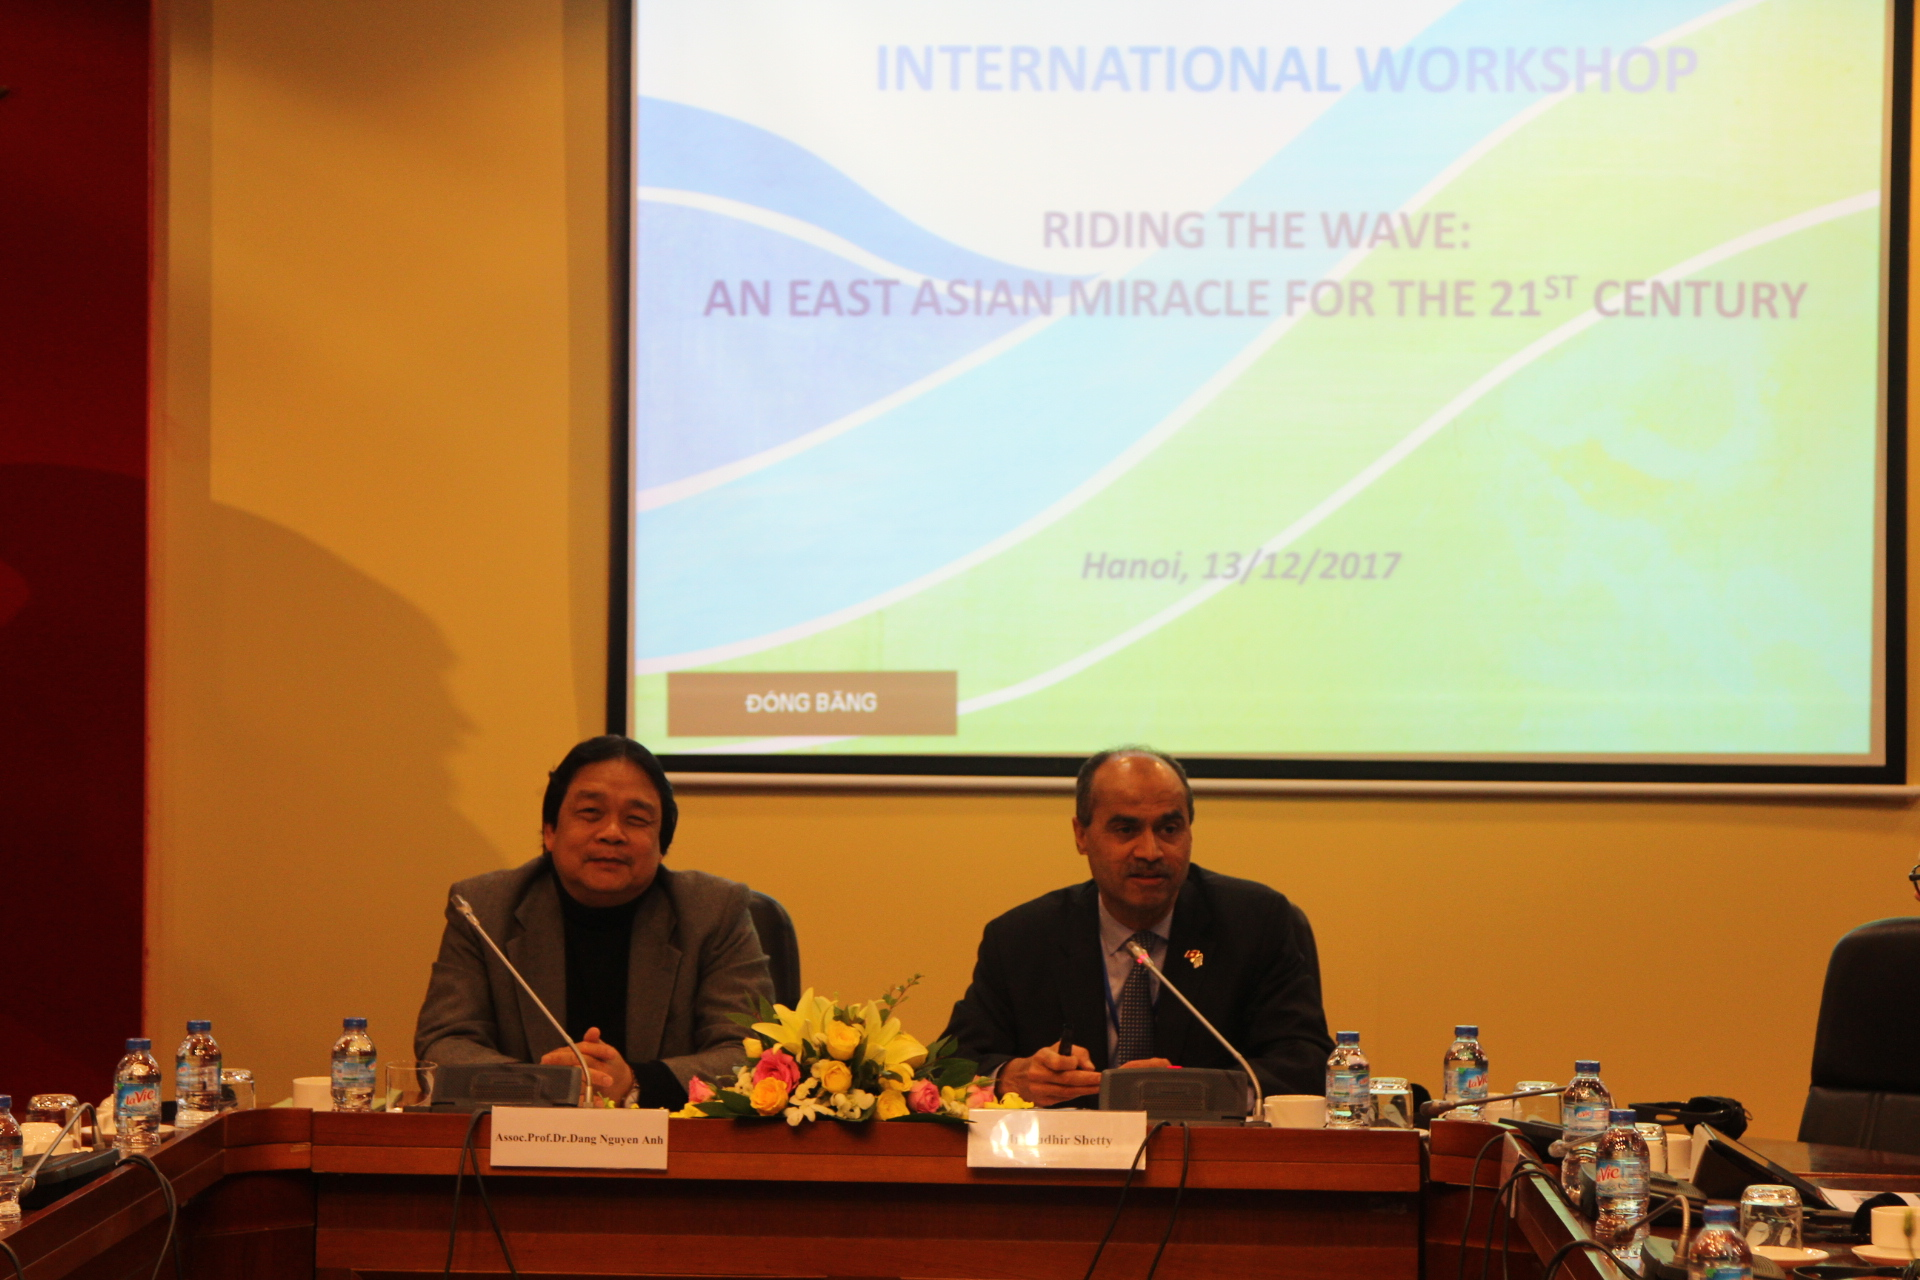 Mr. Sudhir Shetty and Assoc.Prof.Dr. Dang Nguyen Anh chaired the discussion